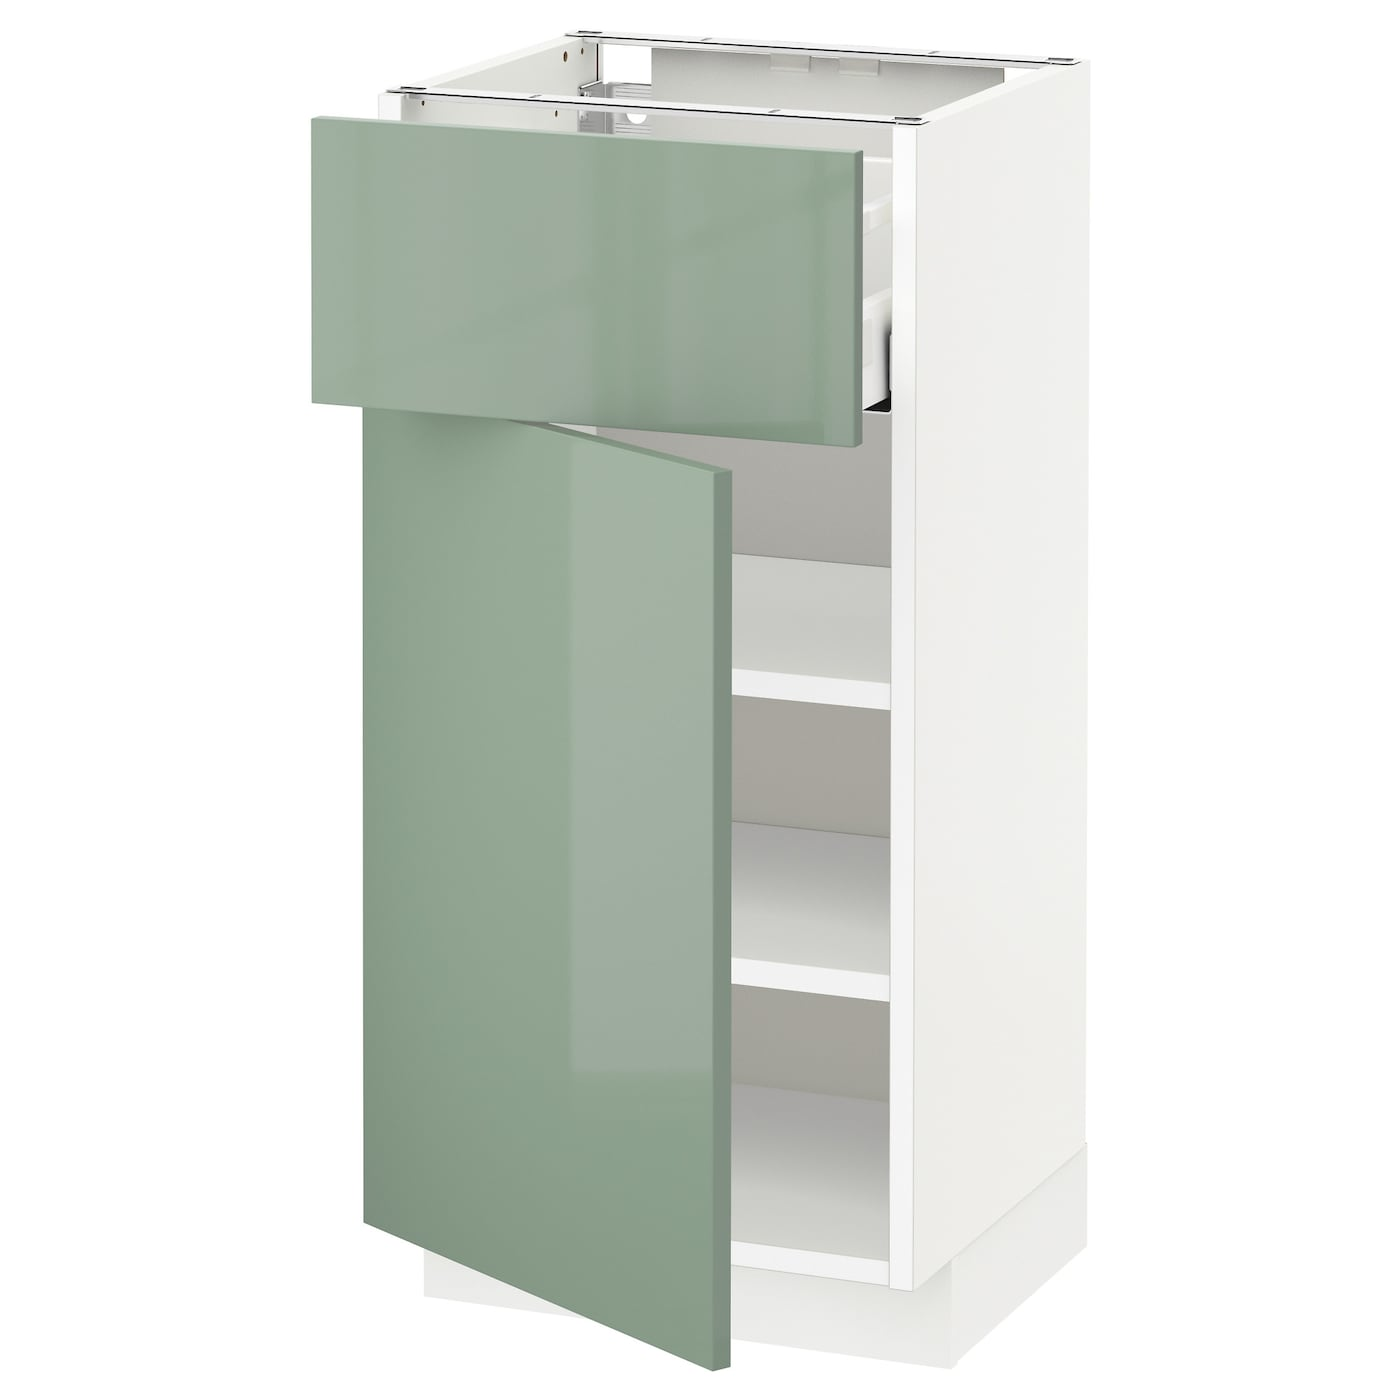 Ikea Kitchen Cabinet Lighting: METOD/MAXIMERA Base Cabinet With Drawer/door White/kallarp